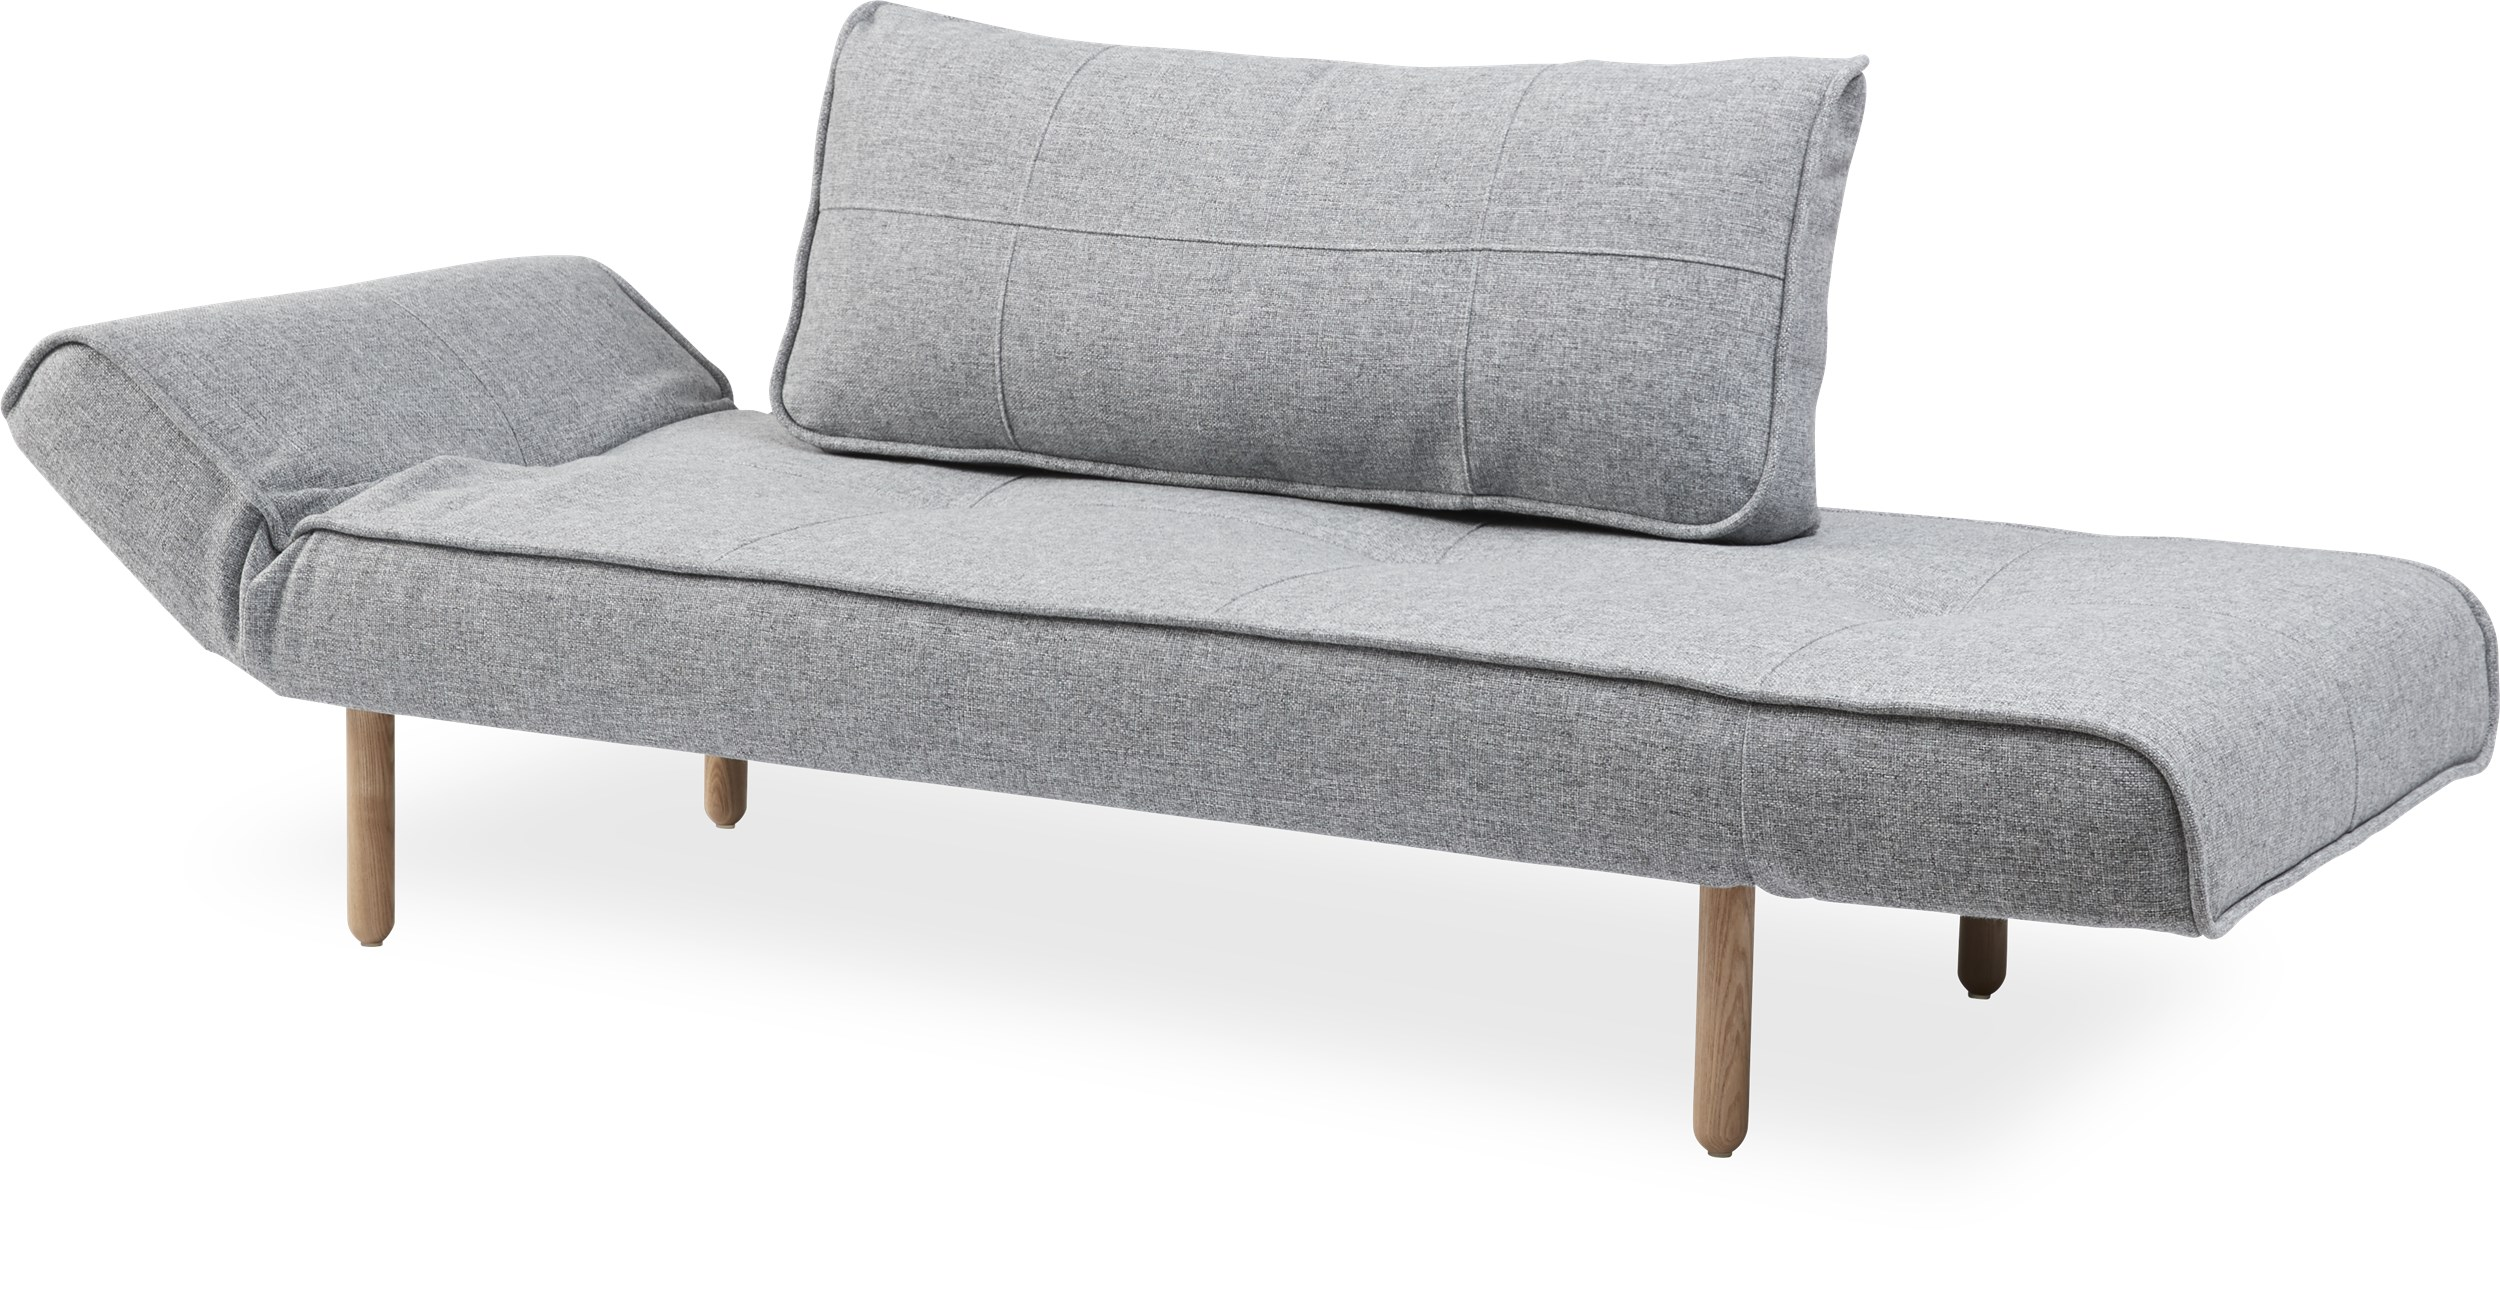 Innovation Living - Zeal Sovesofa